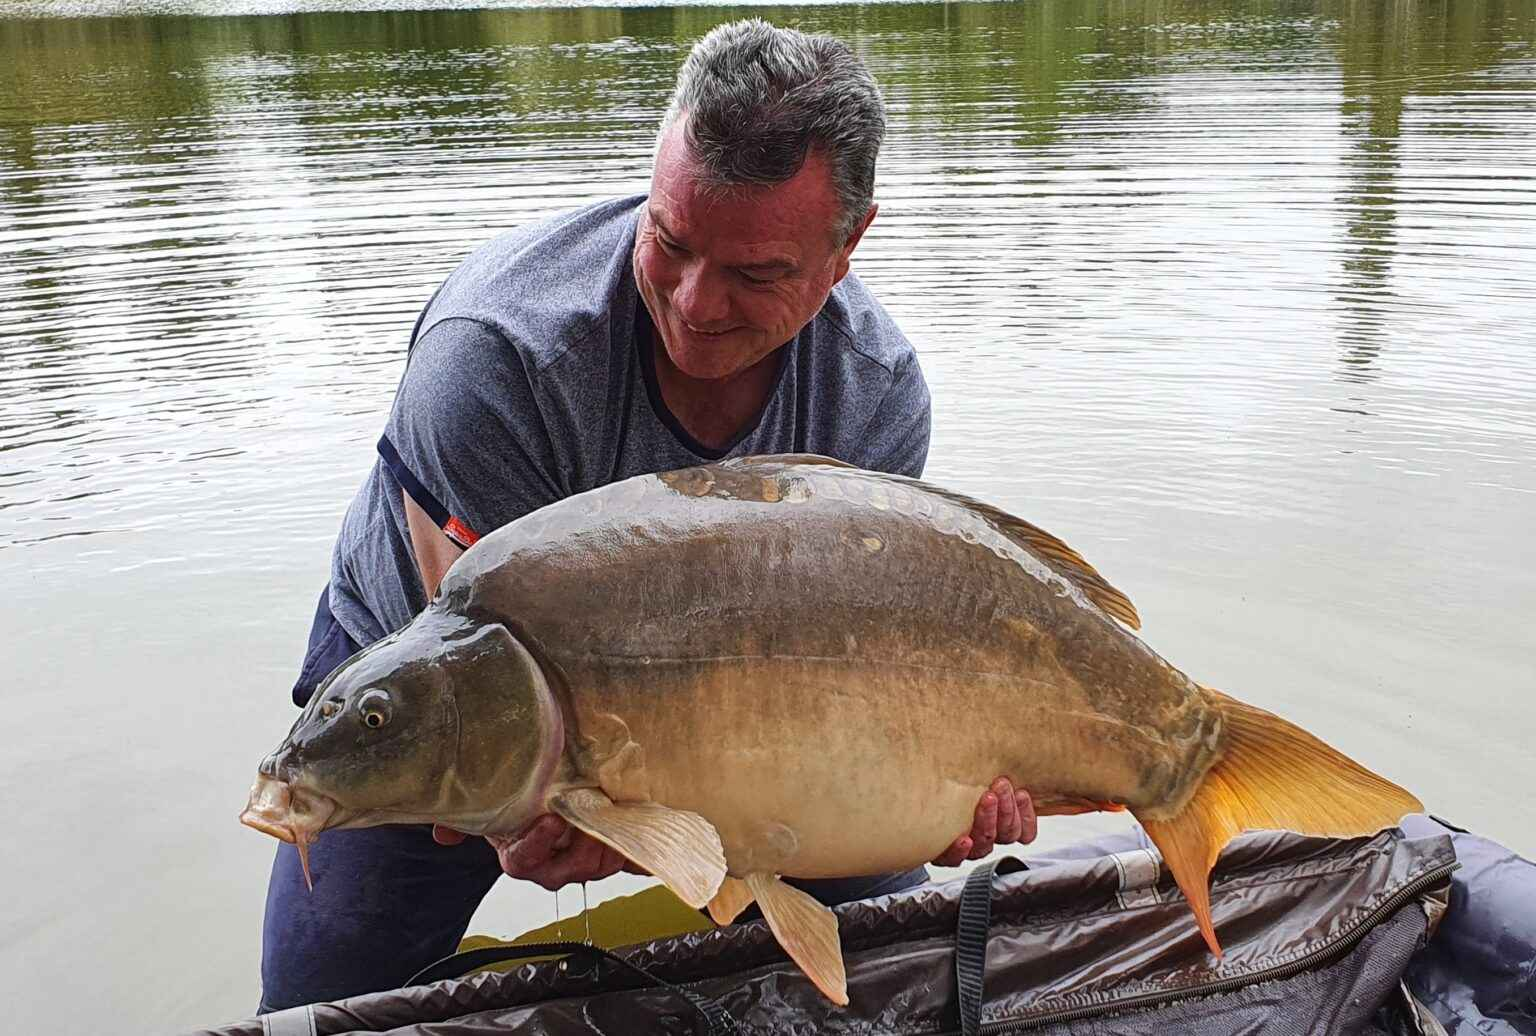 Carp Fishing Holidays with Accommodation and Swimming Pool